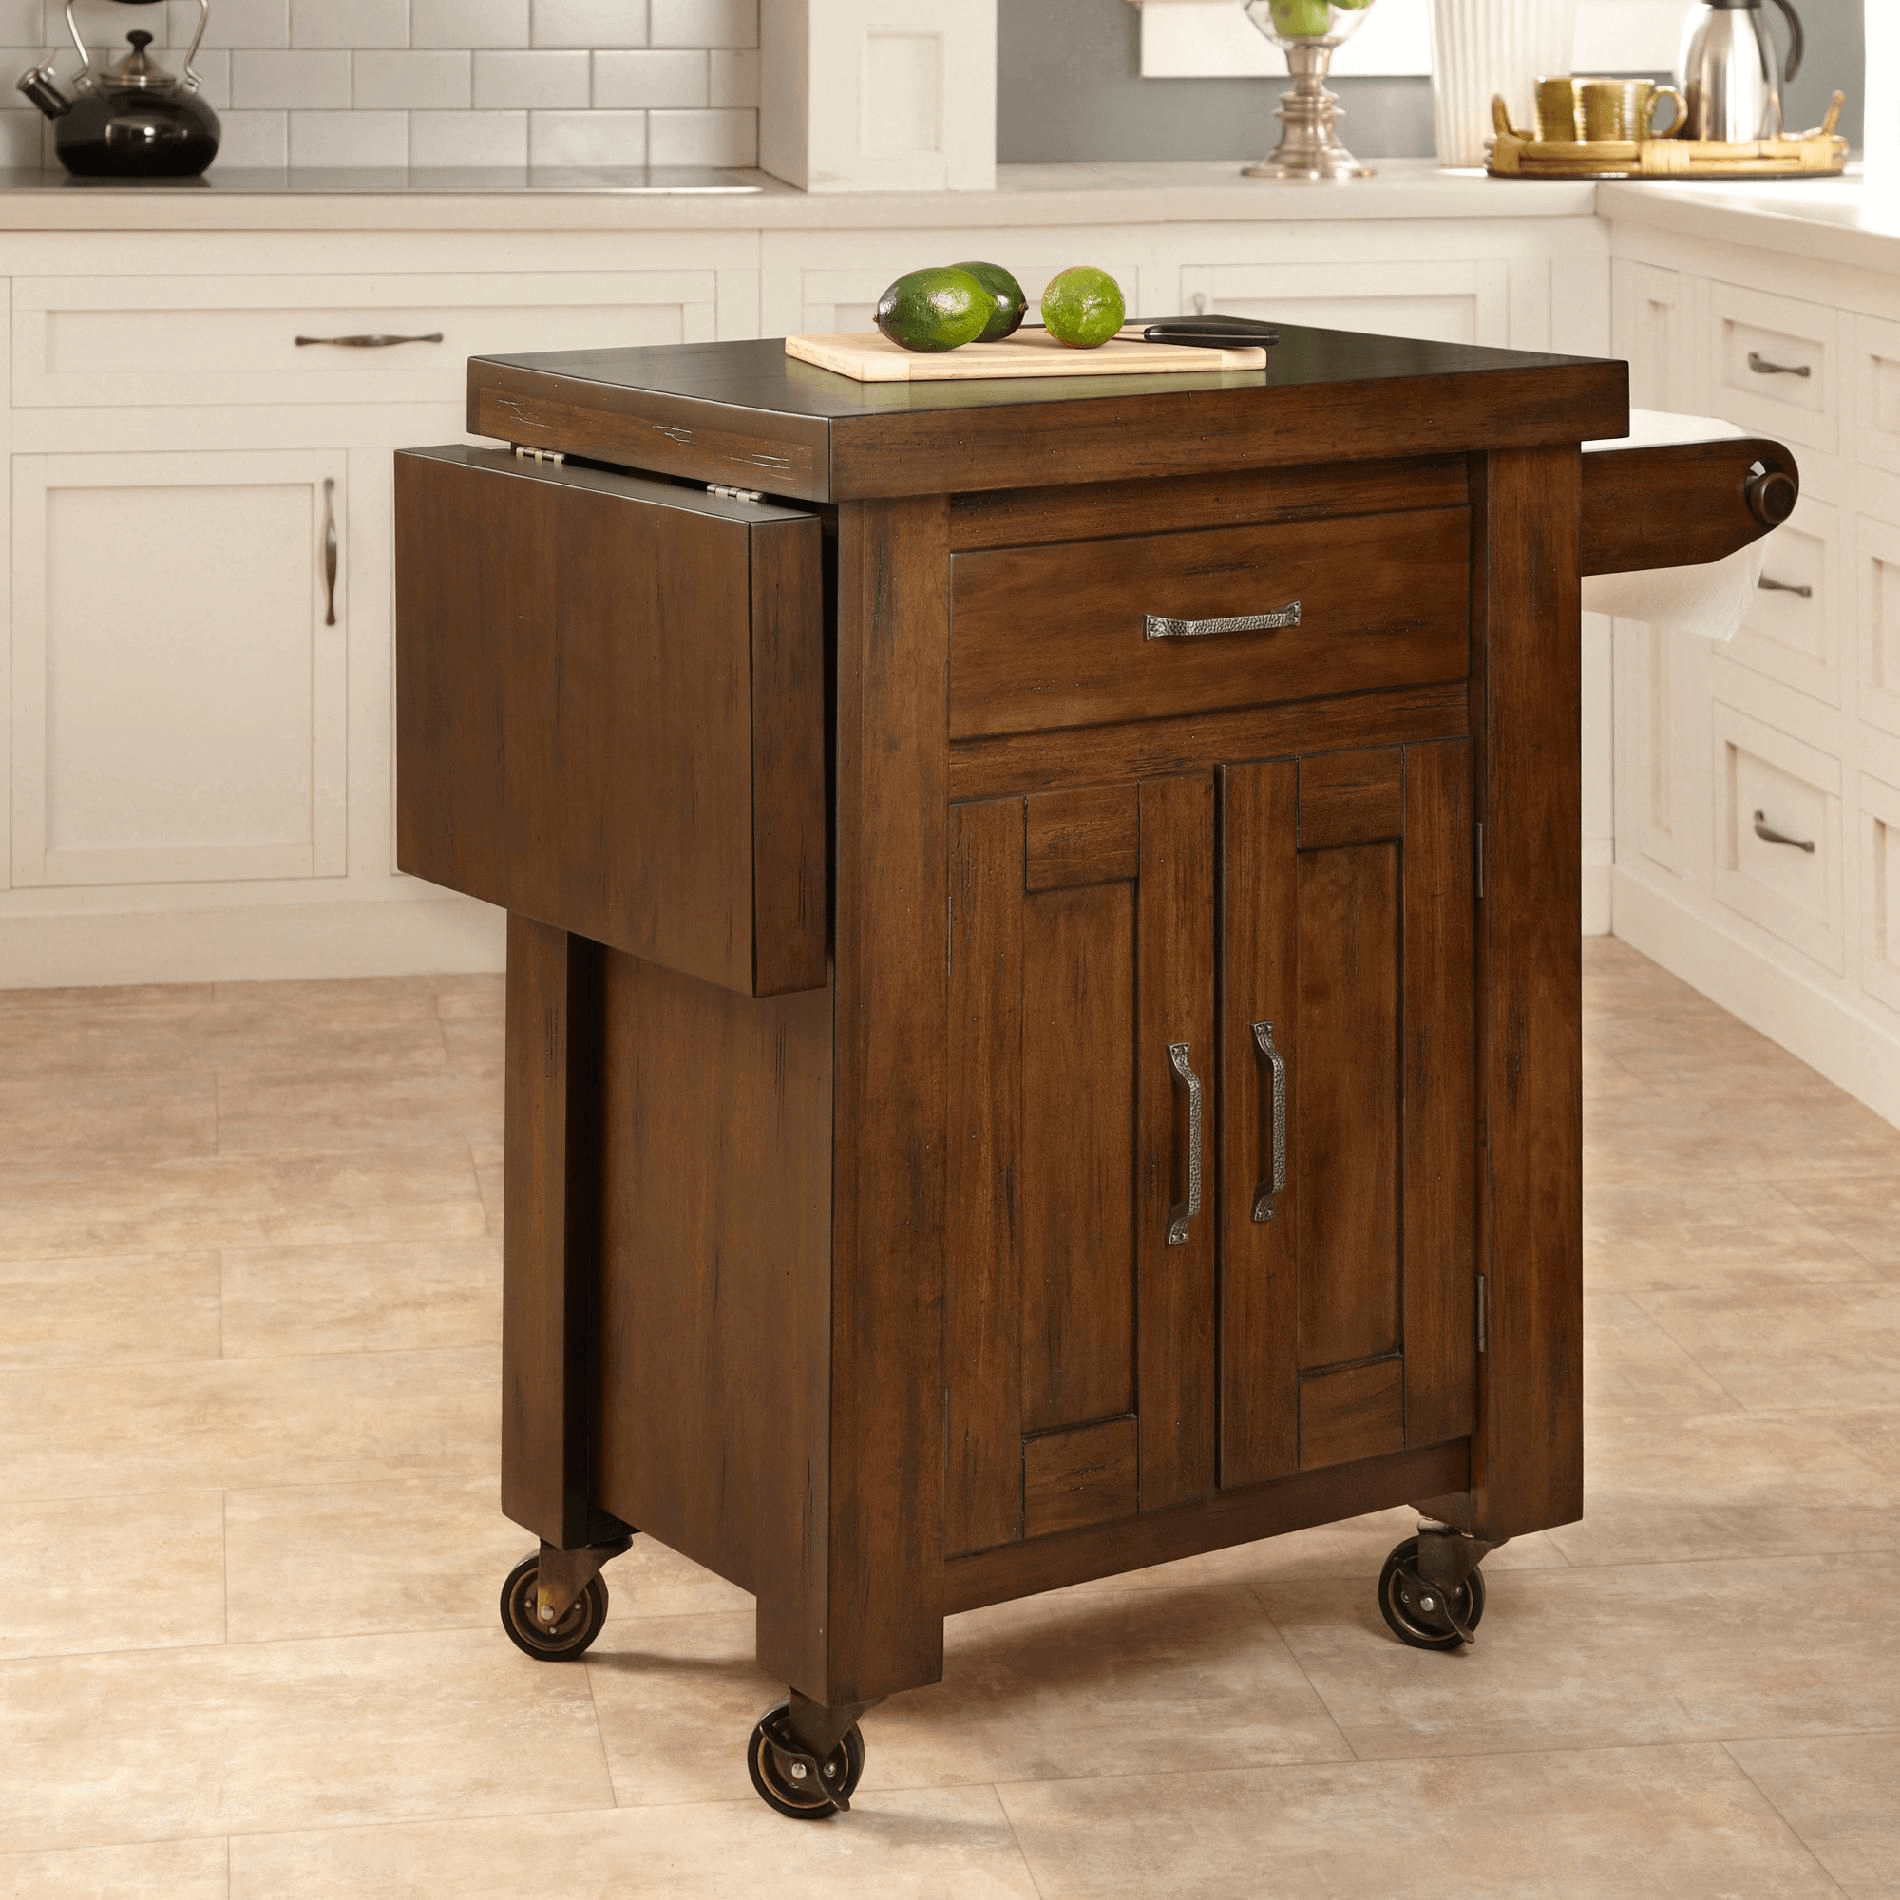 kitchen island with wheels diy kitchen island drop leaf 9921